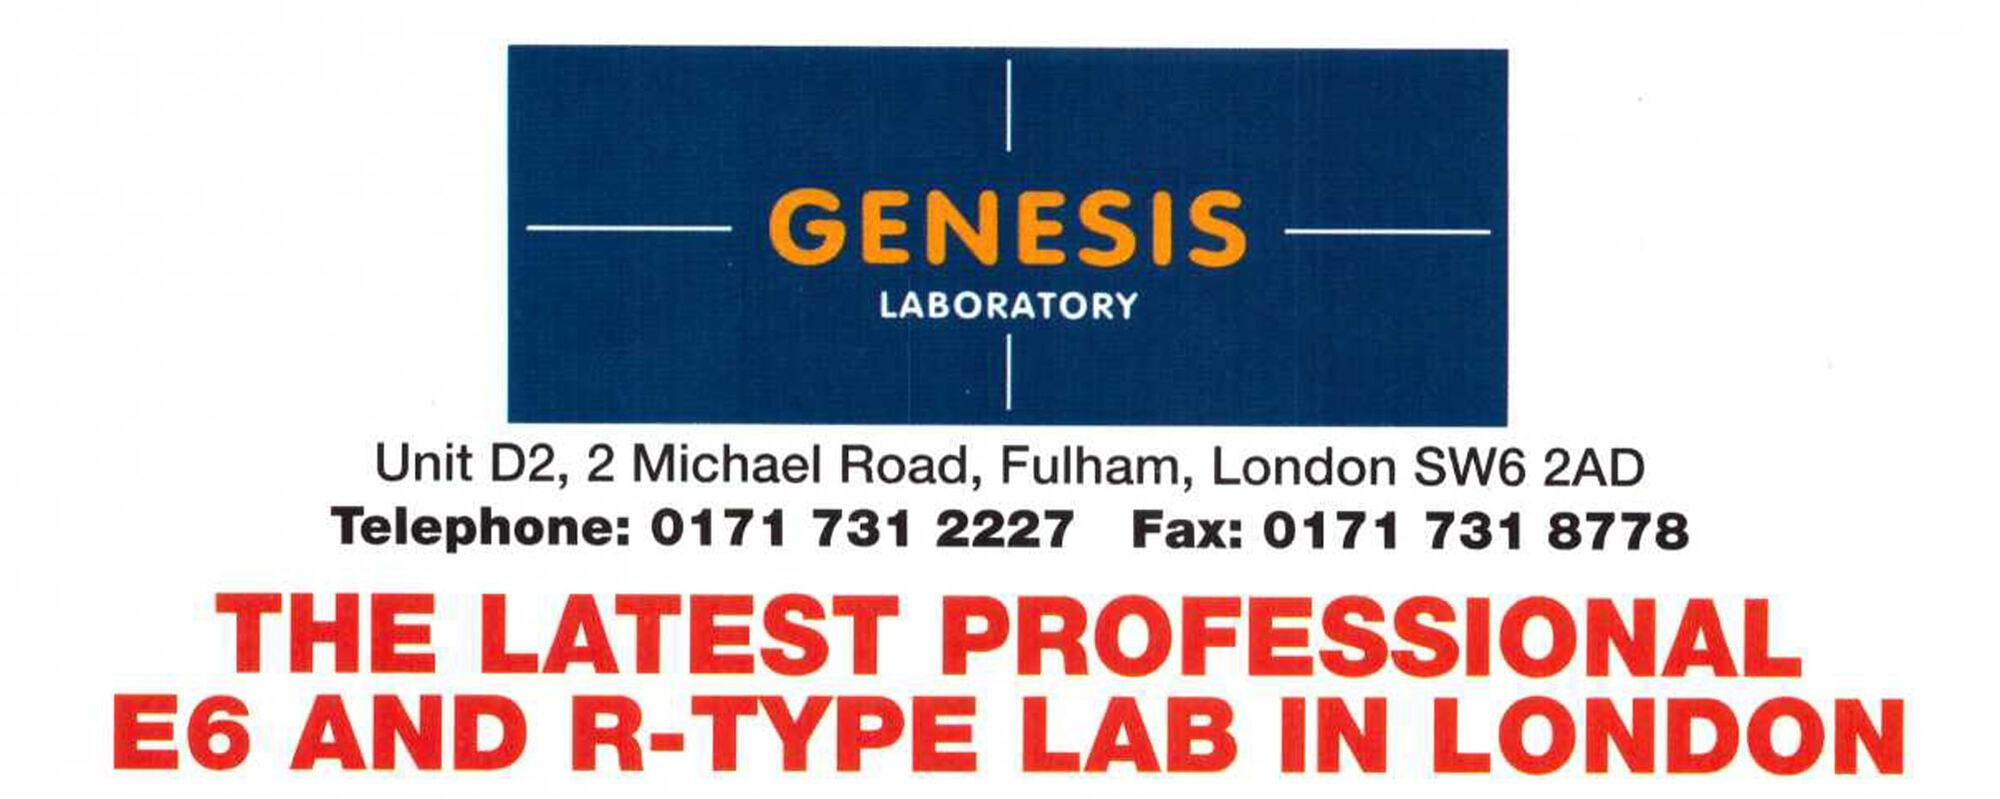 Genesis Laboratory Ltd opens in January 1997.